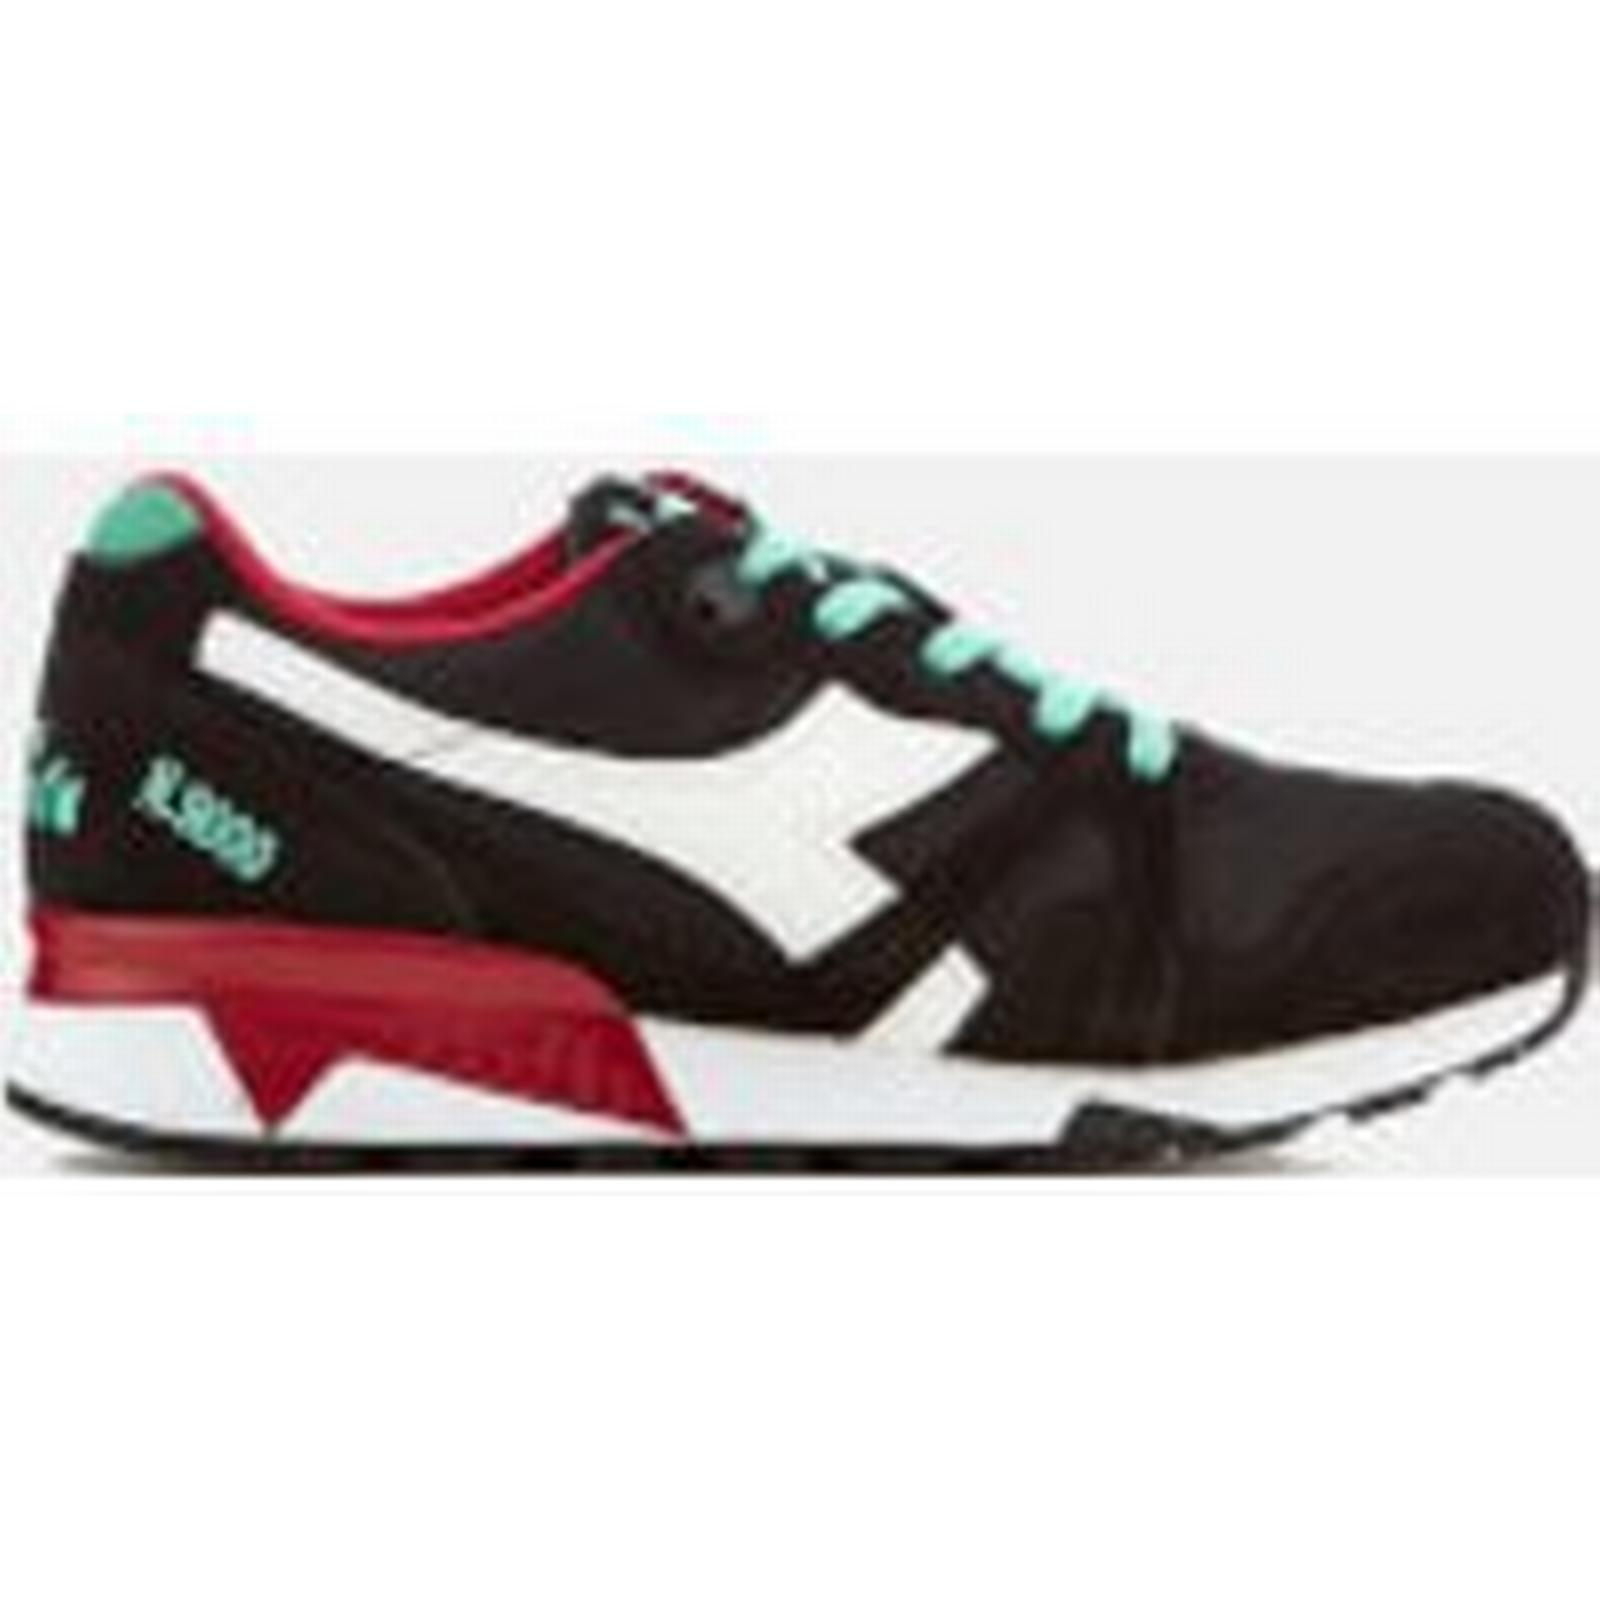 Diadora Men's N9000 III Trainers - 9 Black/Waterfall/Chilli Pepper - UK 9 - - Black 96f720